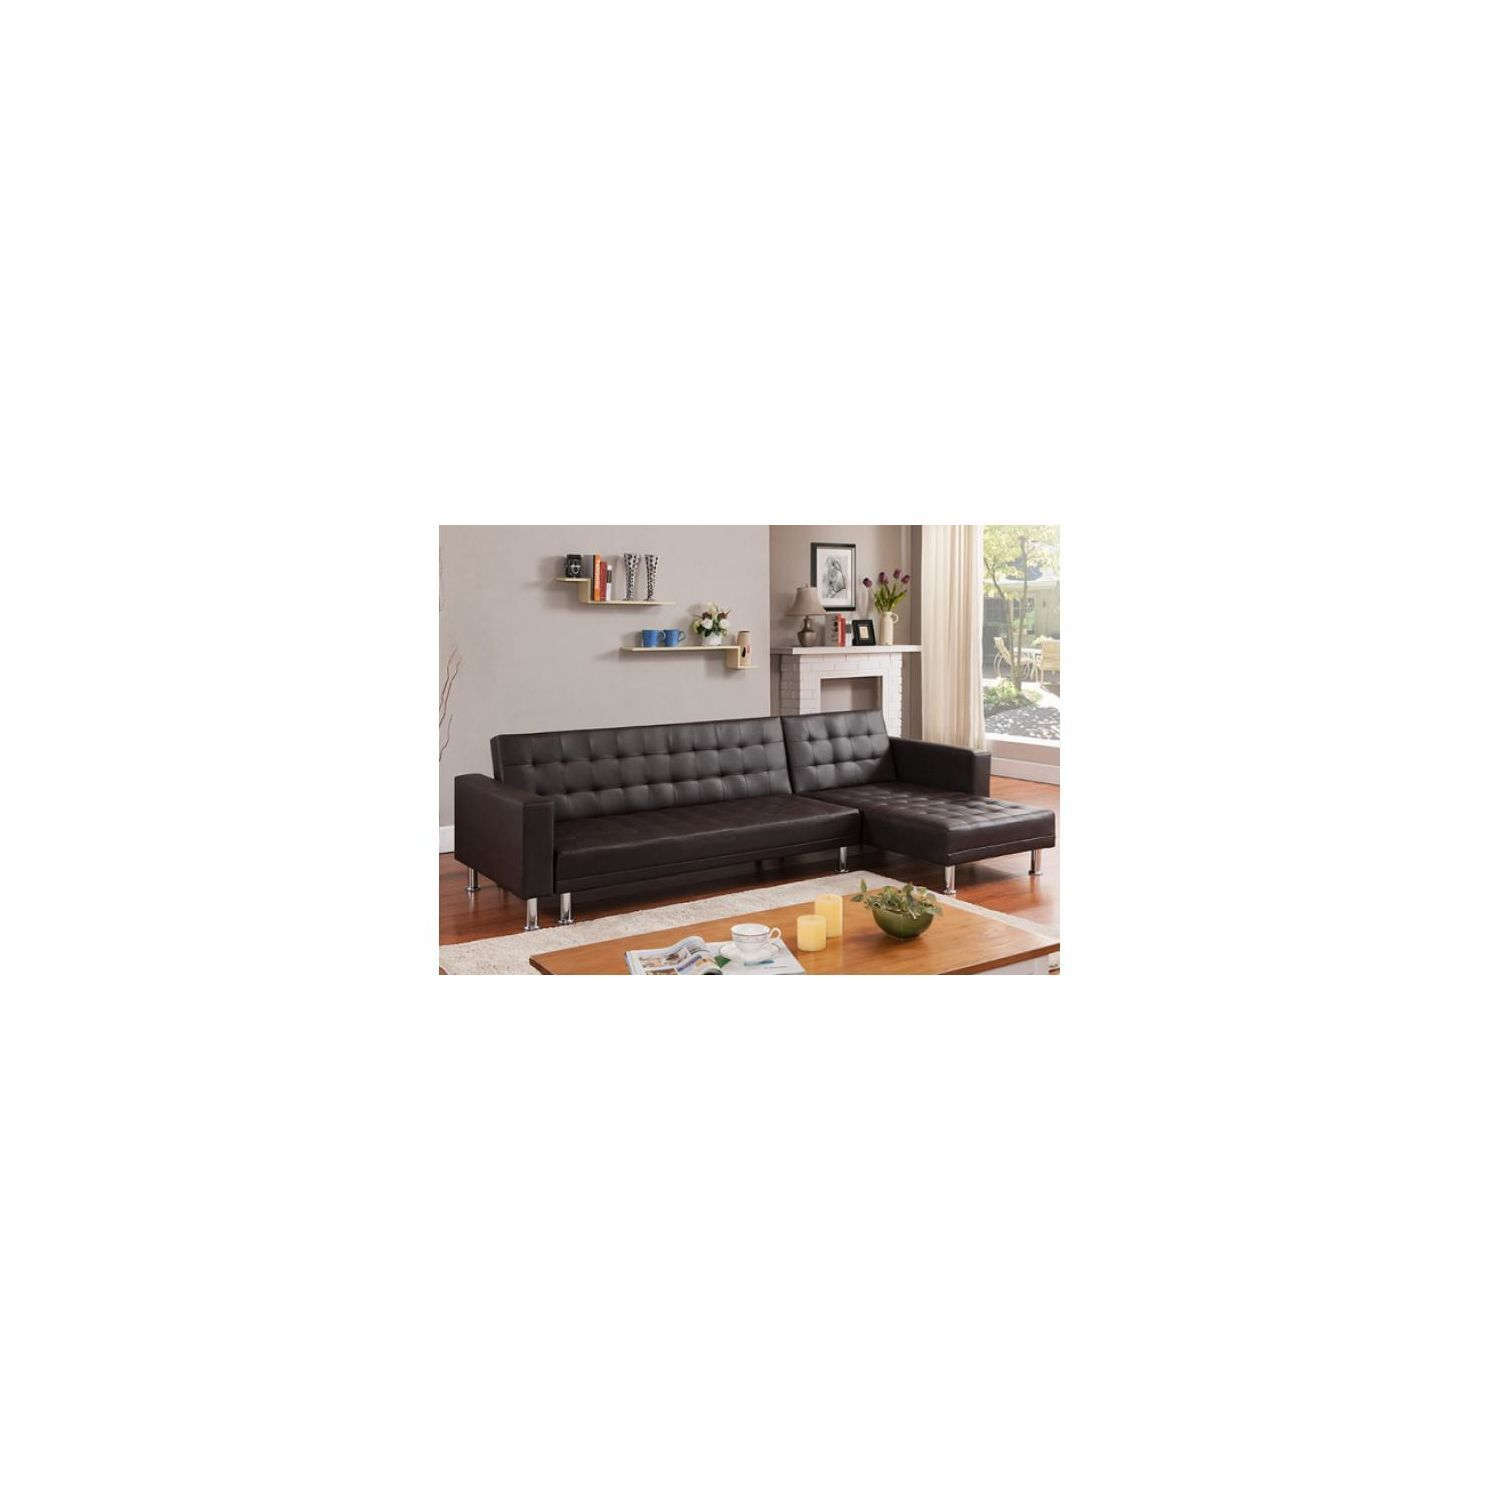 Declikdeco Canape D 39 Angle Convertible Marron Los Metal Simili Cuir Reversible Achat X2f Vente C French Country House House French Country